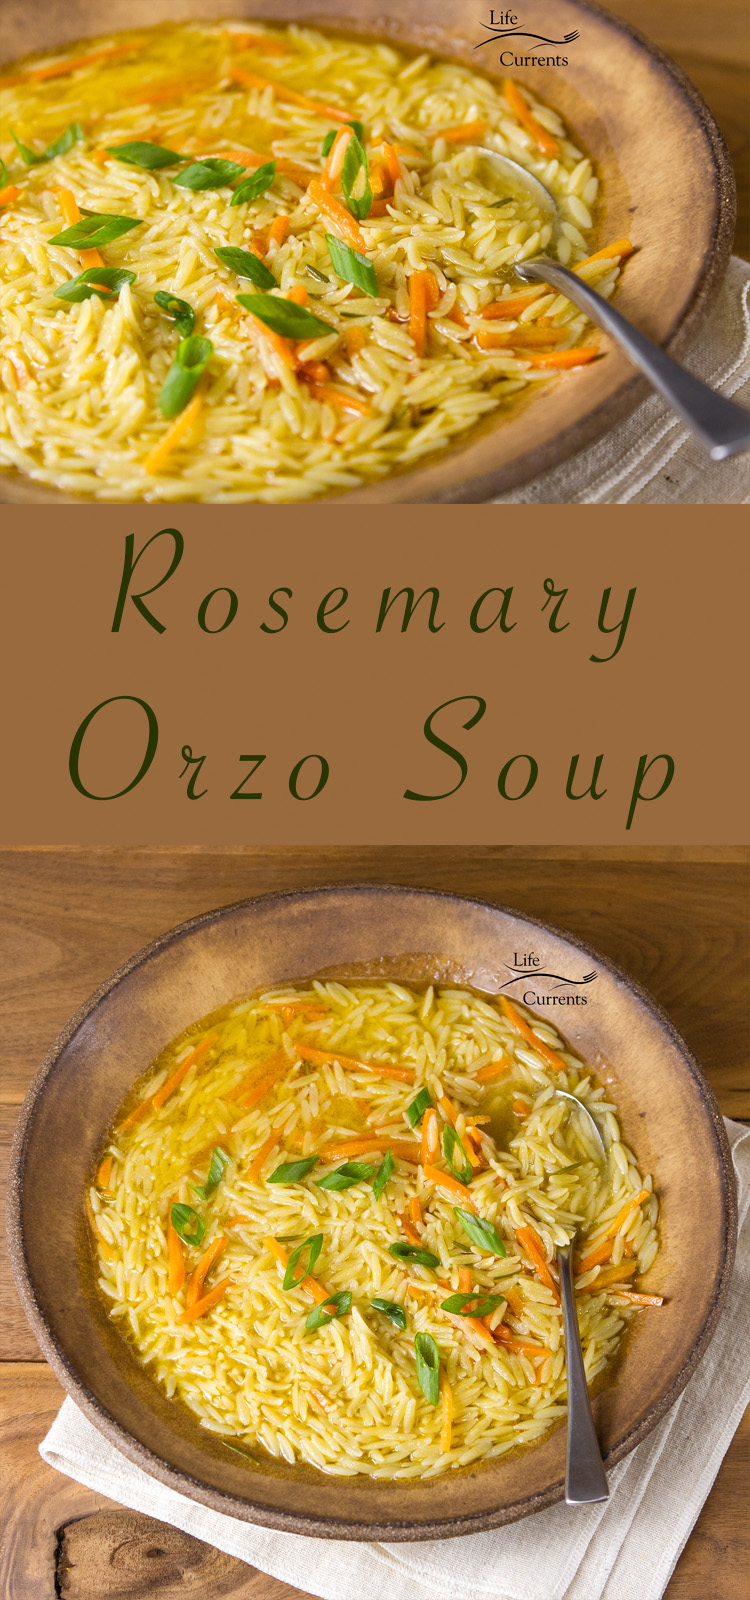 This Rosemary Orzo Soup is so easy to make, and so delicious. It's super comforting, and a bit like my version of chicken noodle soup